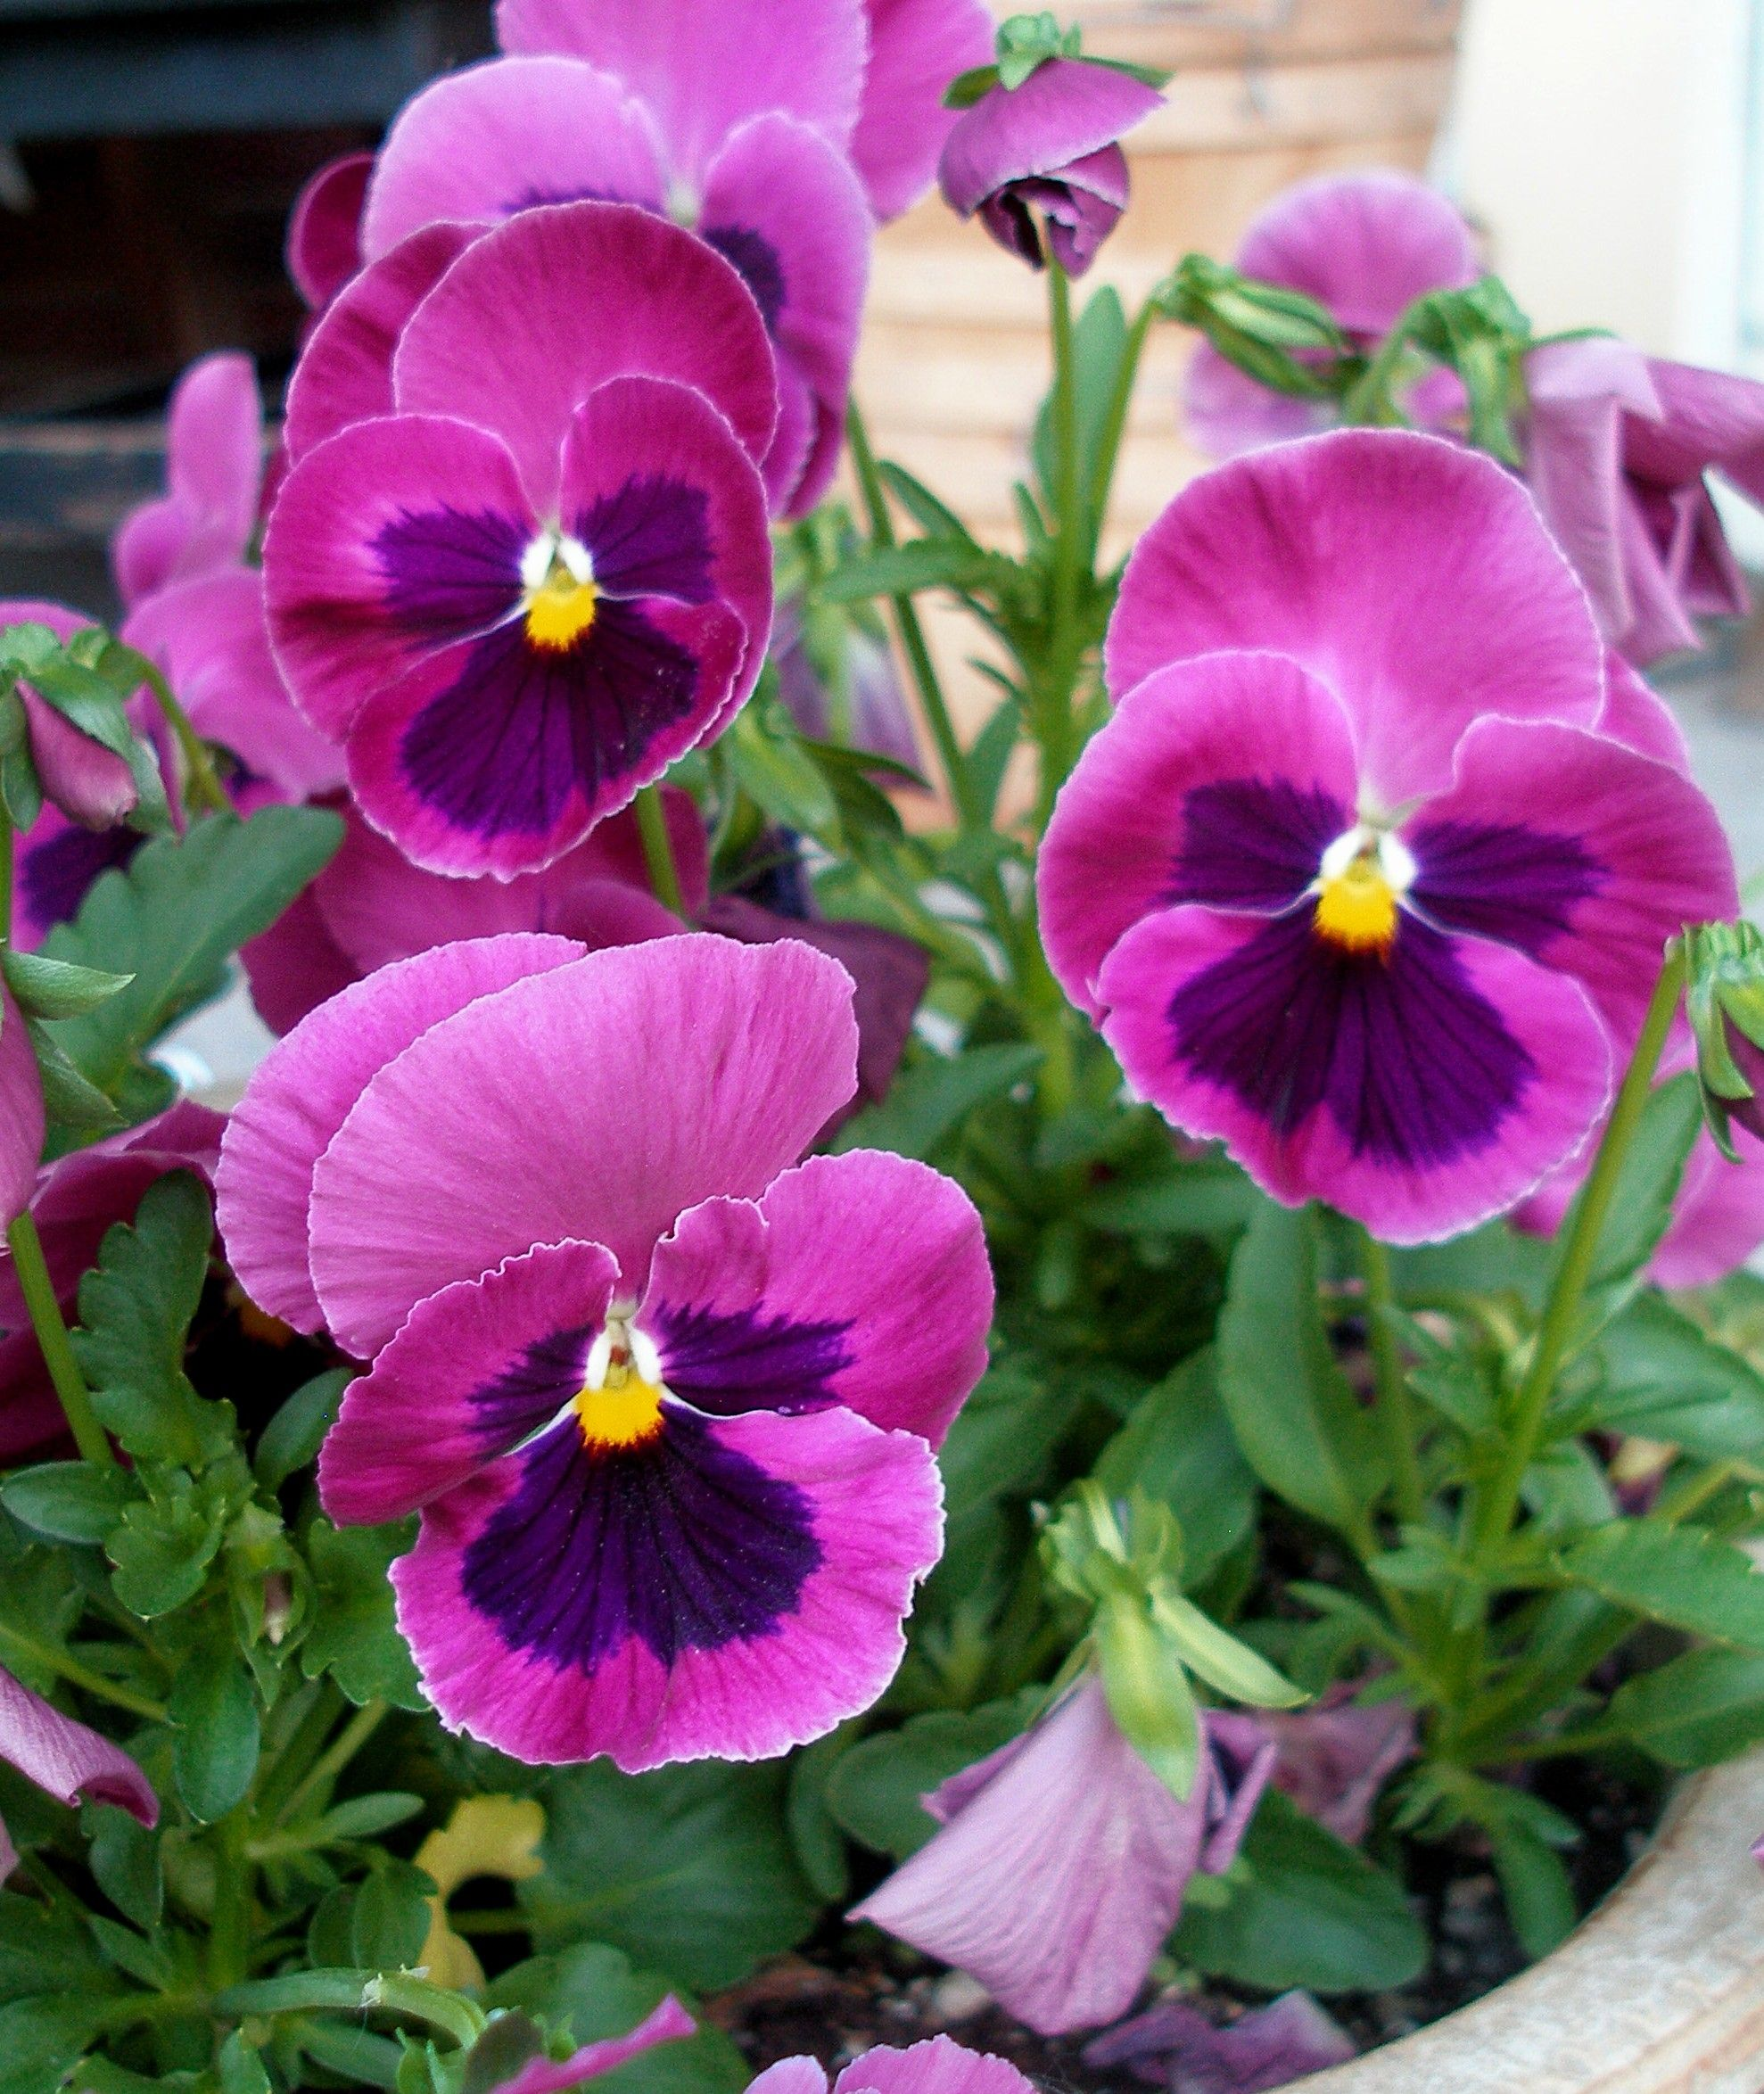 Pin By Lucy At Patina Paradise On Pansies Pansies Flowers Flowers Photography Flower Photos